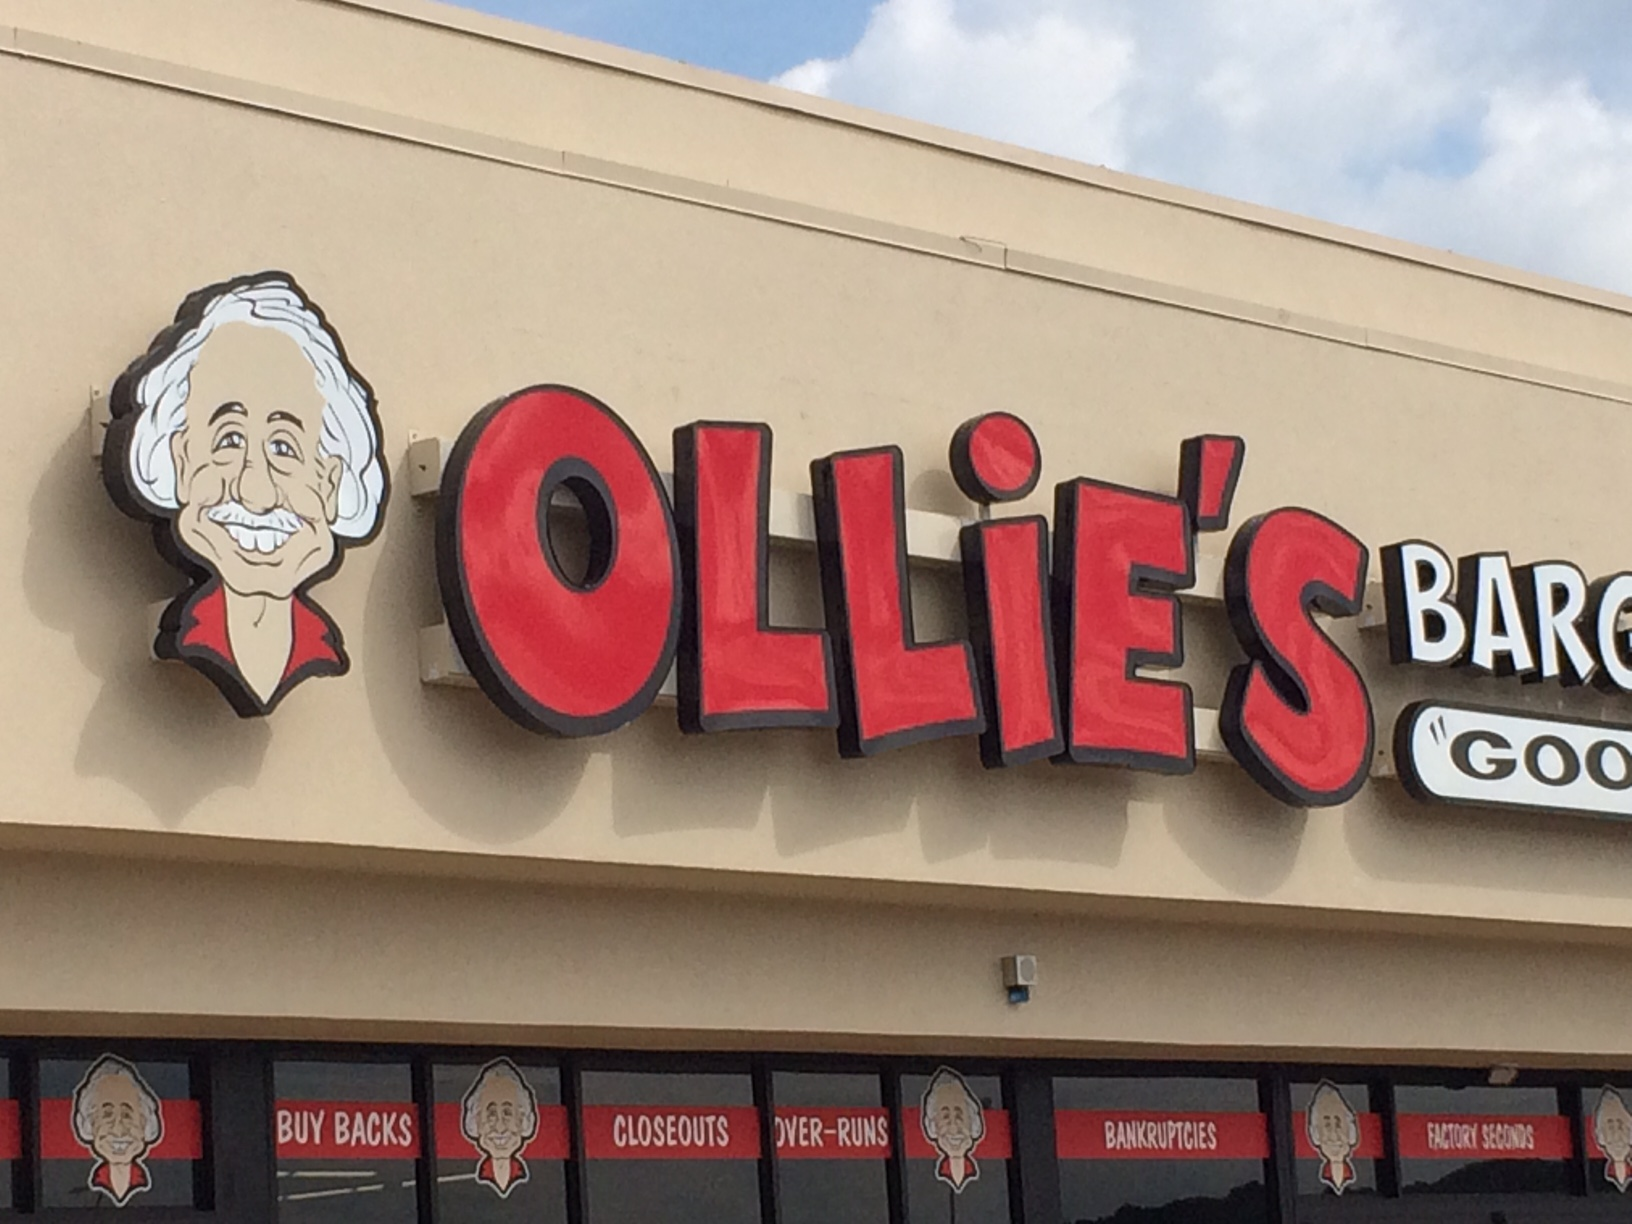 Remarkable New Ollies Bargain Outlet In Greeneville Results In Rush Of Dailytribune Chair Design For Home Dailytribuneorg